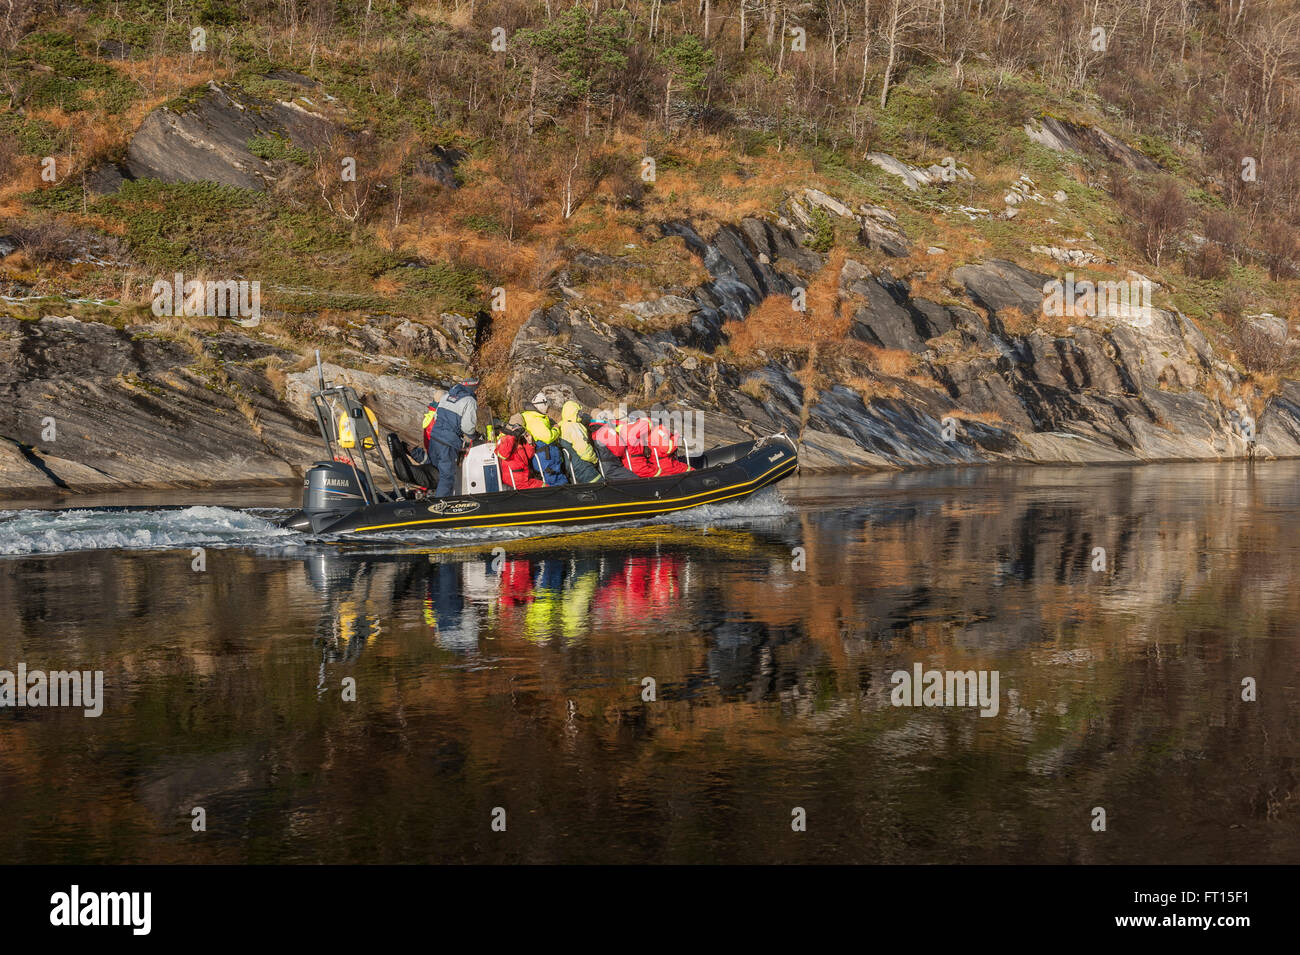 Riding the Saltstraumen in a rigid inflatable boat. Bodø in Nordland county, Norway. Europe Stock Photo